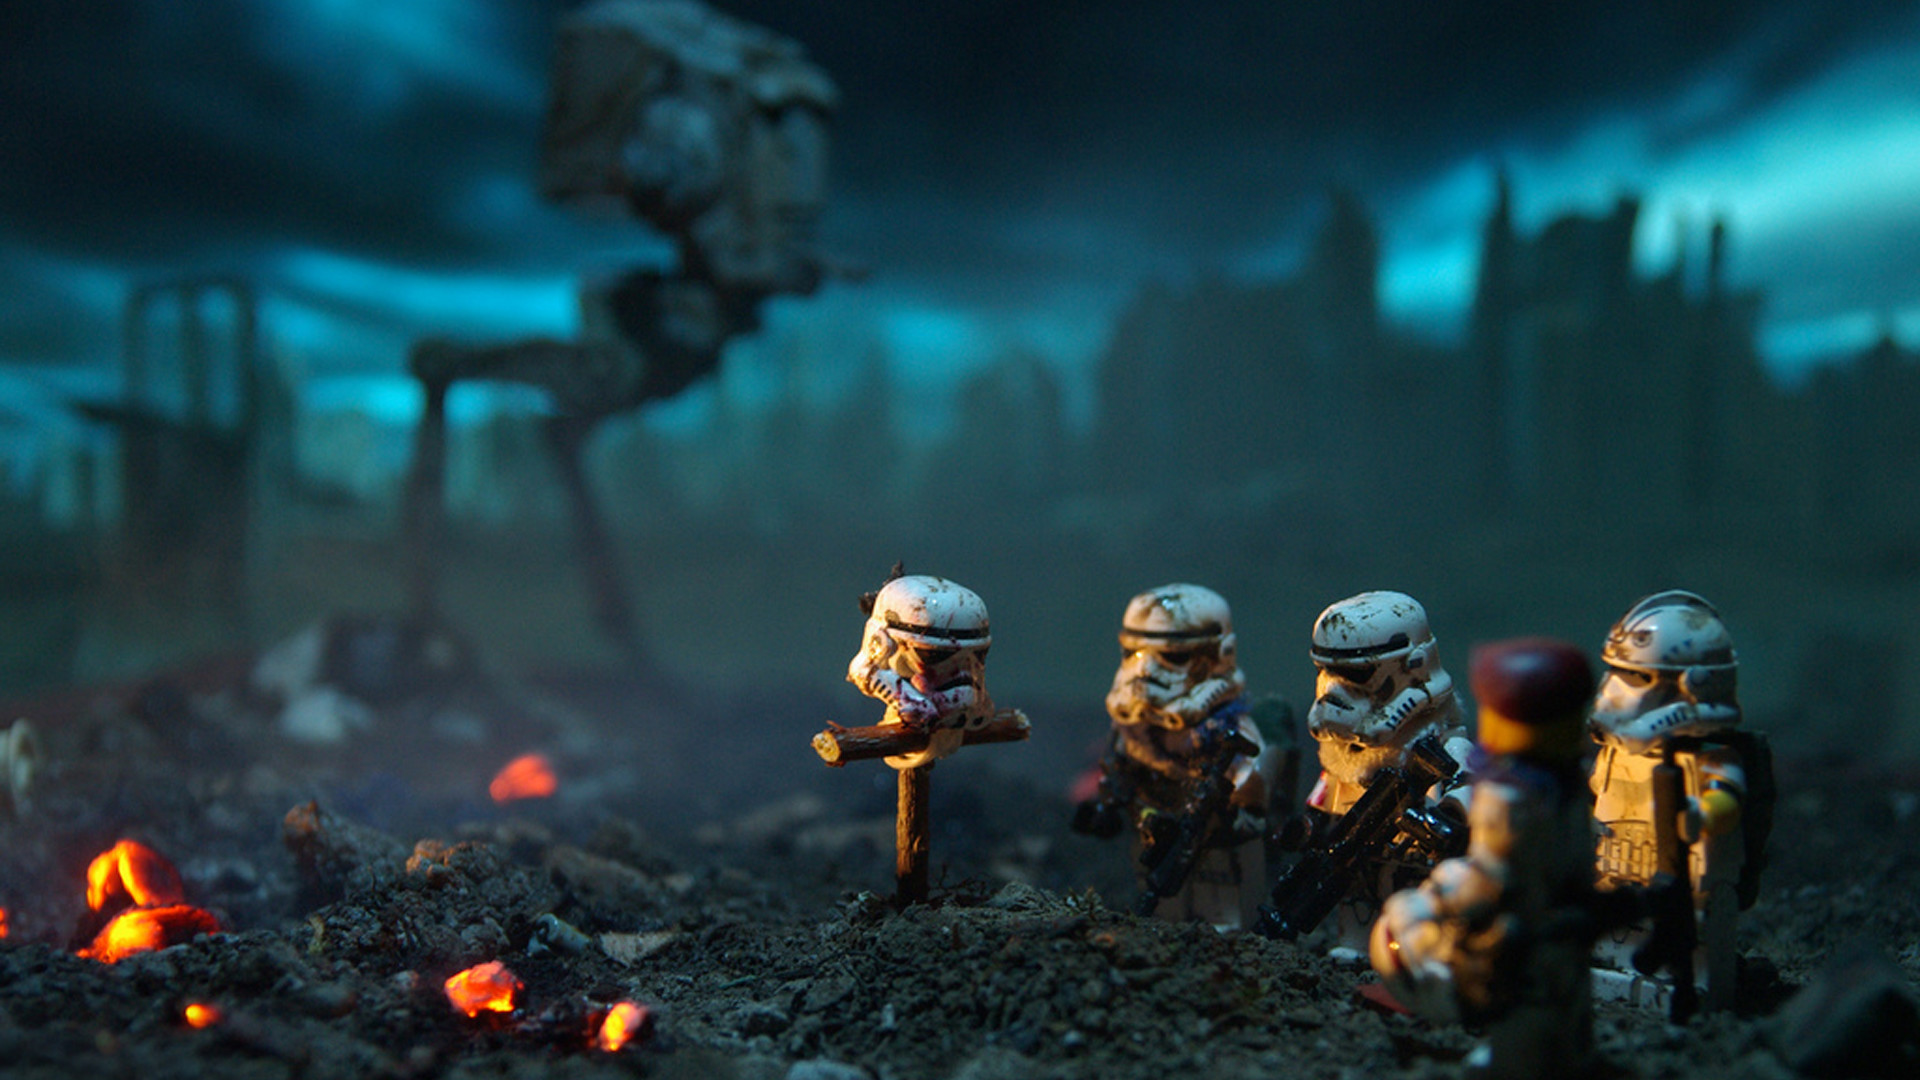 Res: 1920x1080, miniatures, Depth Of Field, Battlefield, LEGO, Star Wars, LEGO Star Wars, Stormtrooper  Wallpapers HD / Desktop and Mobile Backgrounds